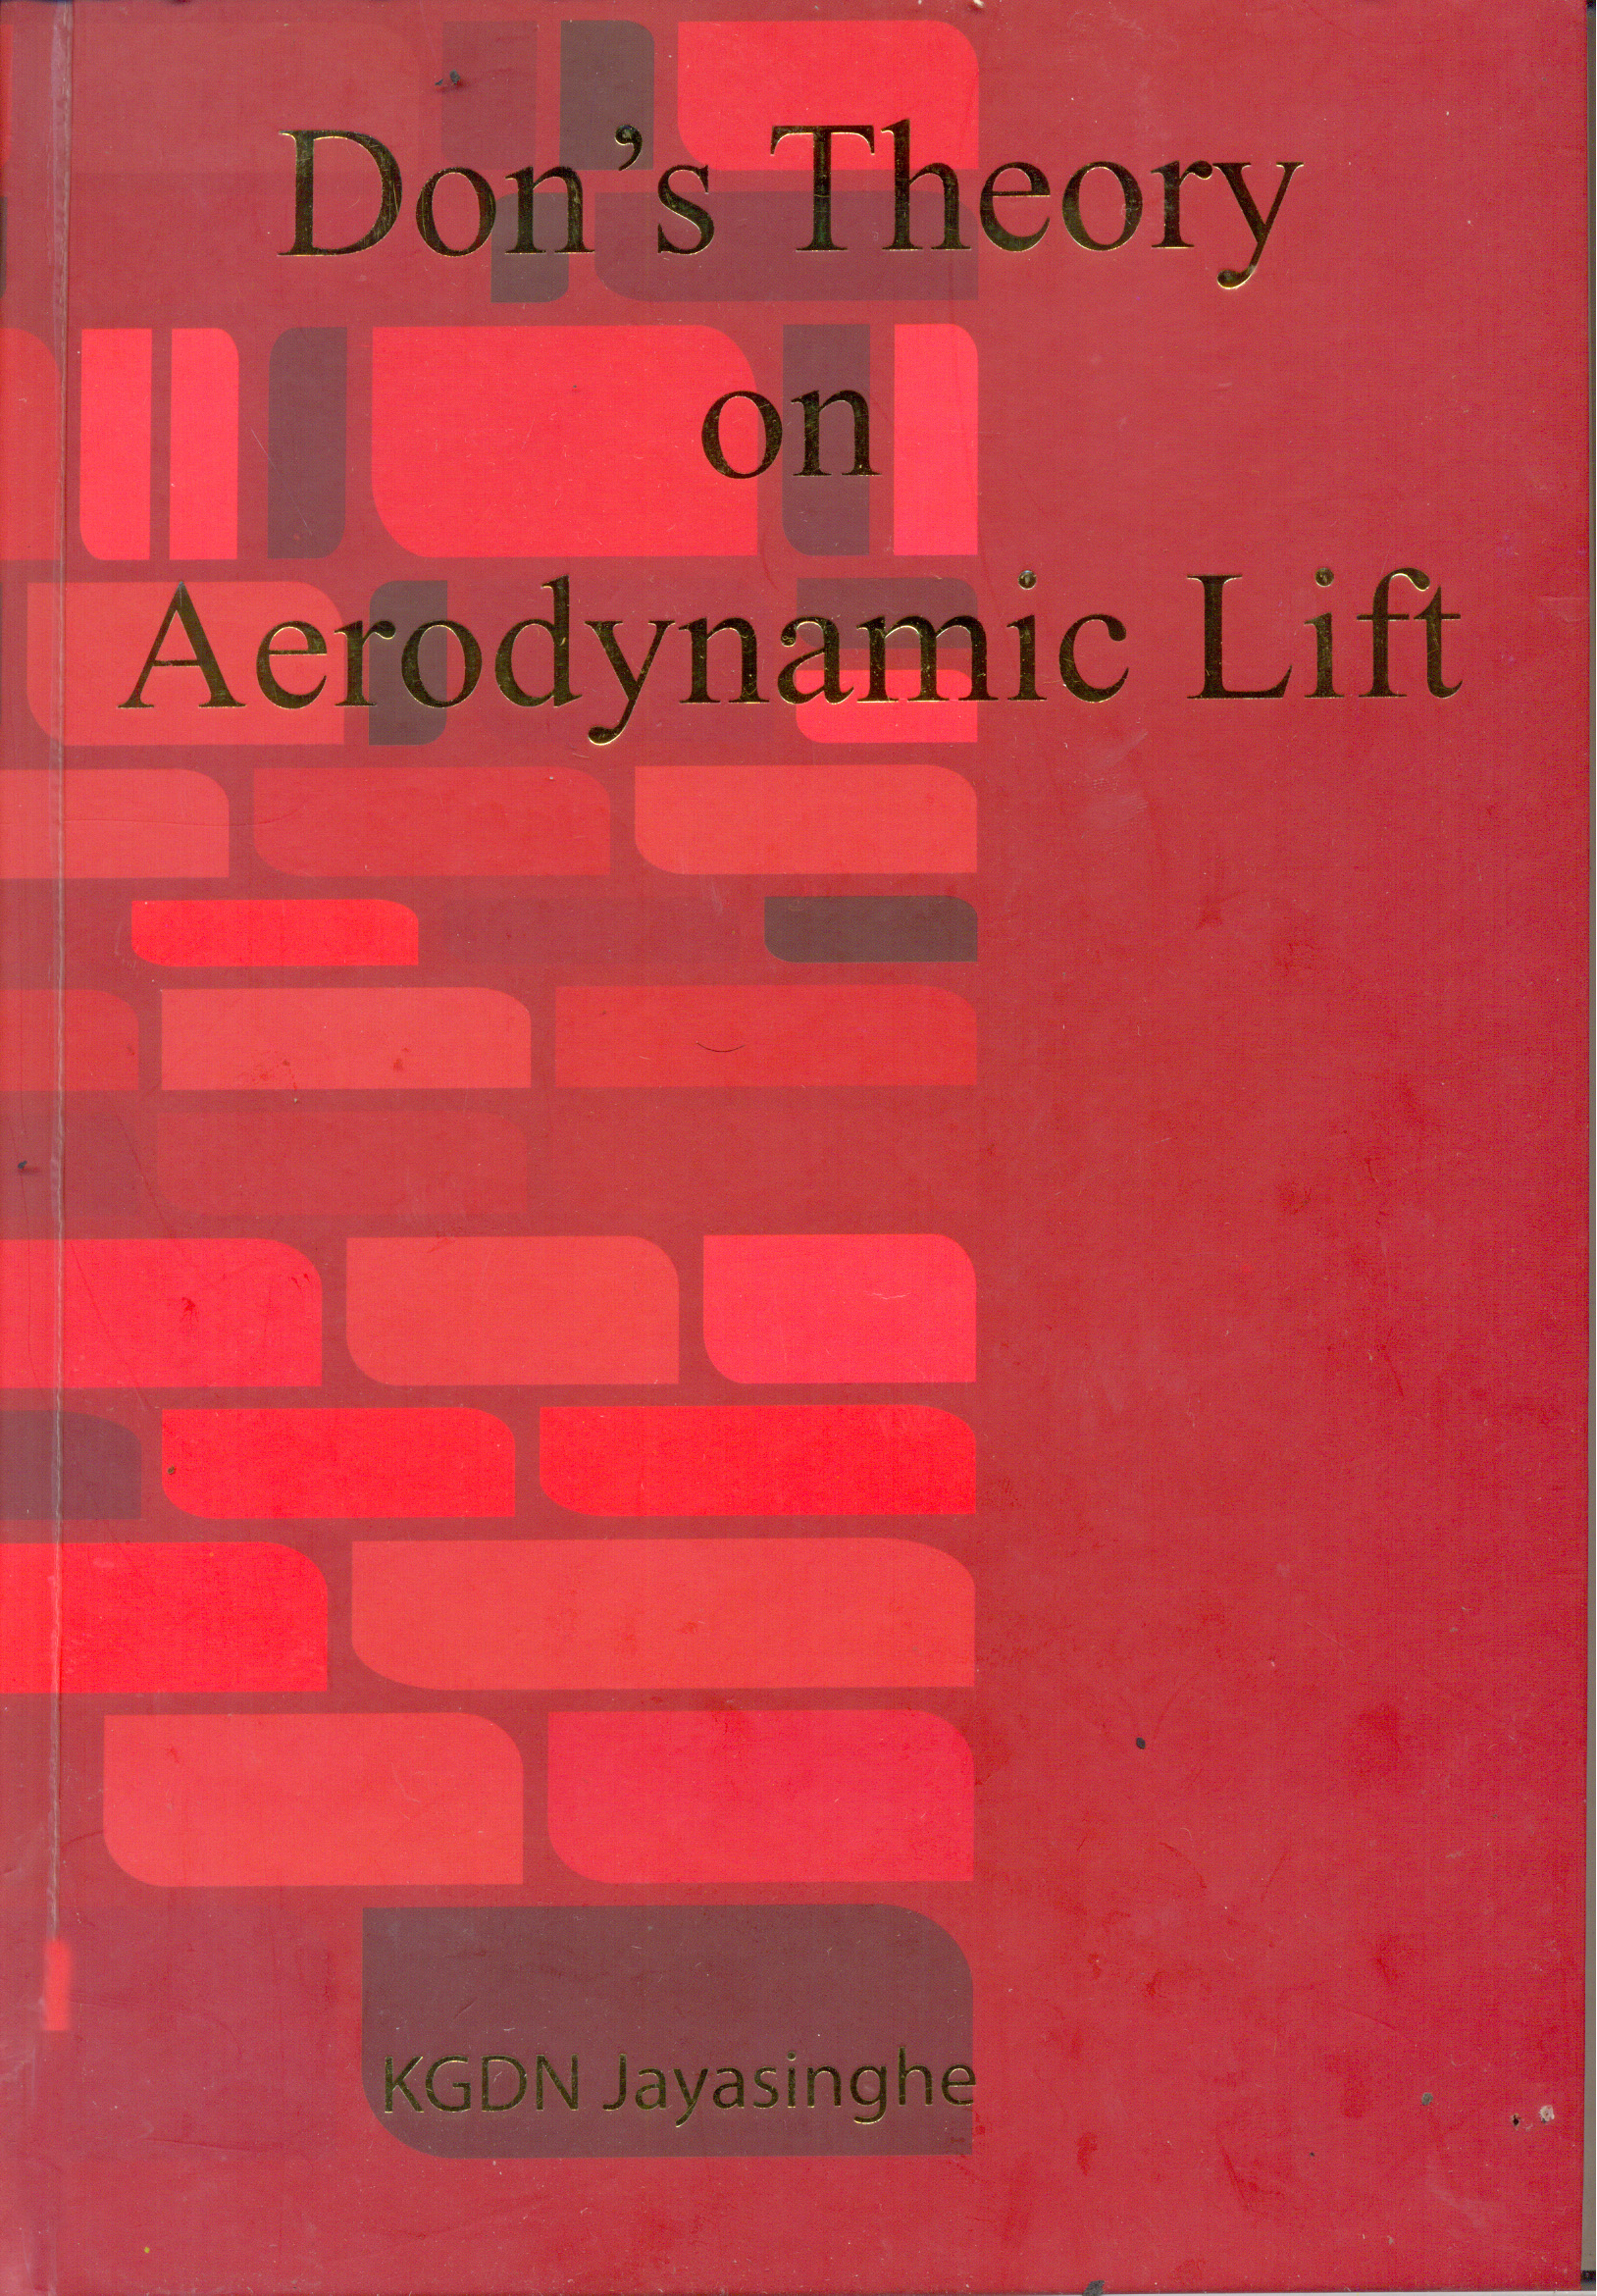 Don's Theory On Aerodynamic Lift